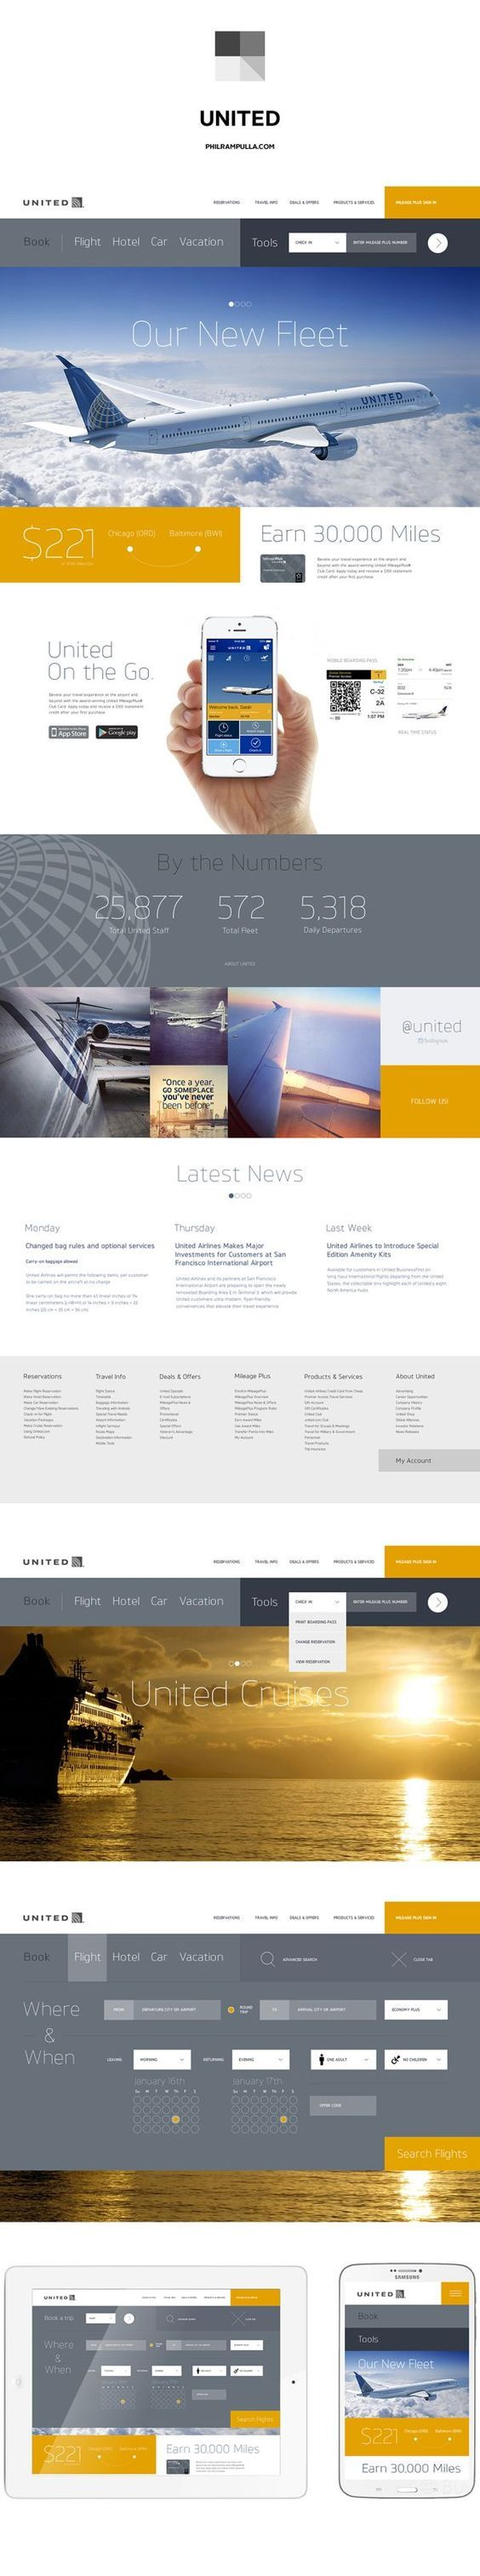 Web design / United Airlines Website Redesign by Phil Rampulla / 30 Examples of Trendy & Modern Web Design: